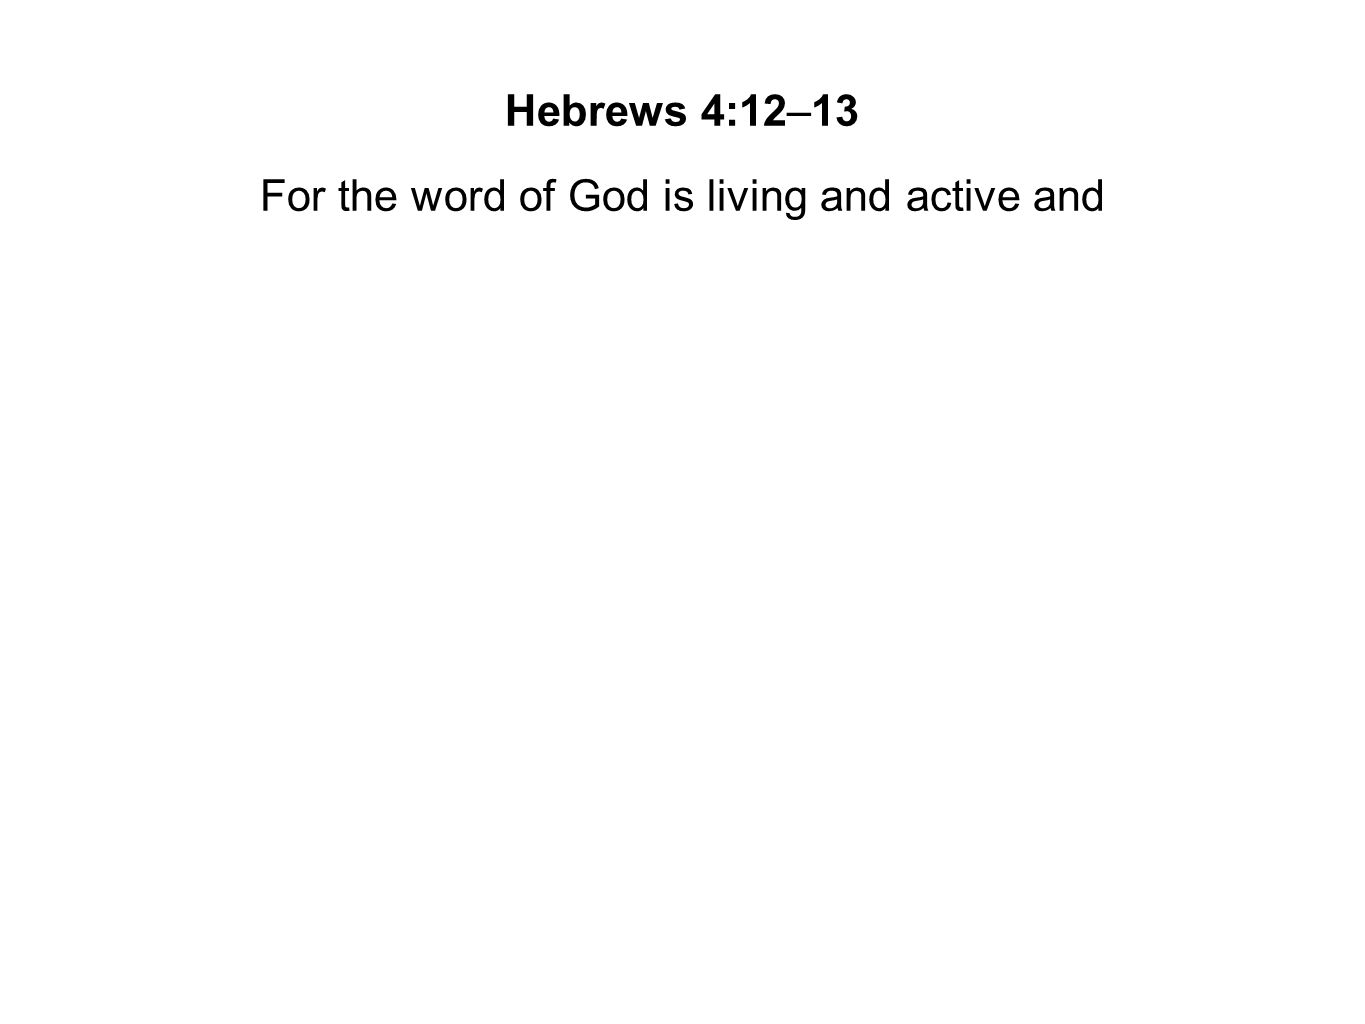 For the word of God is living and active and